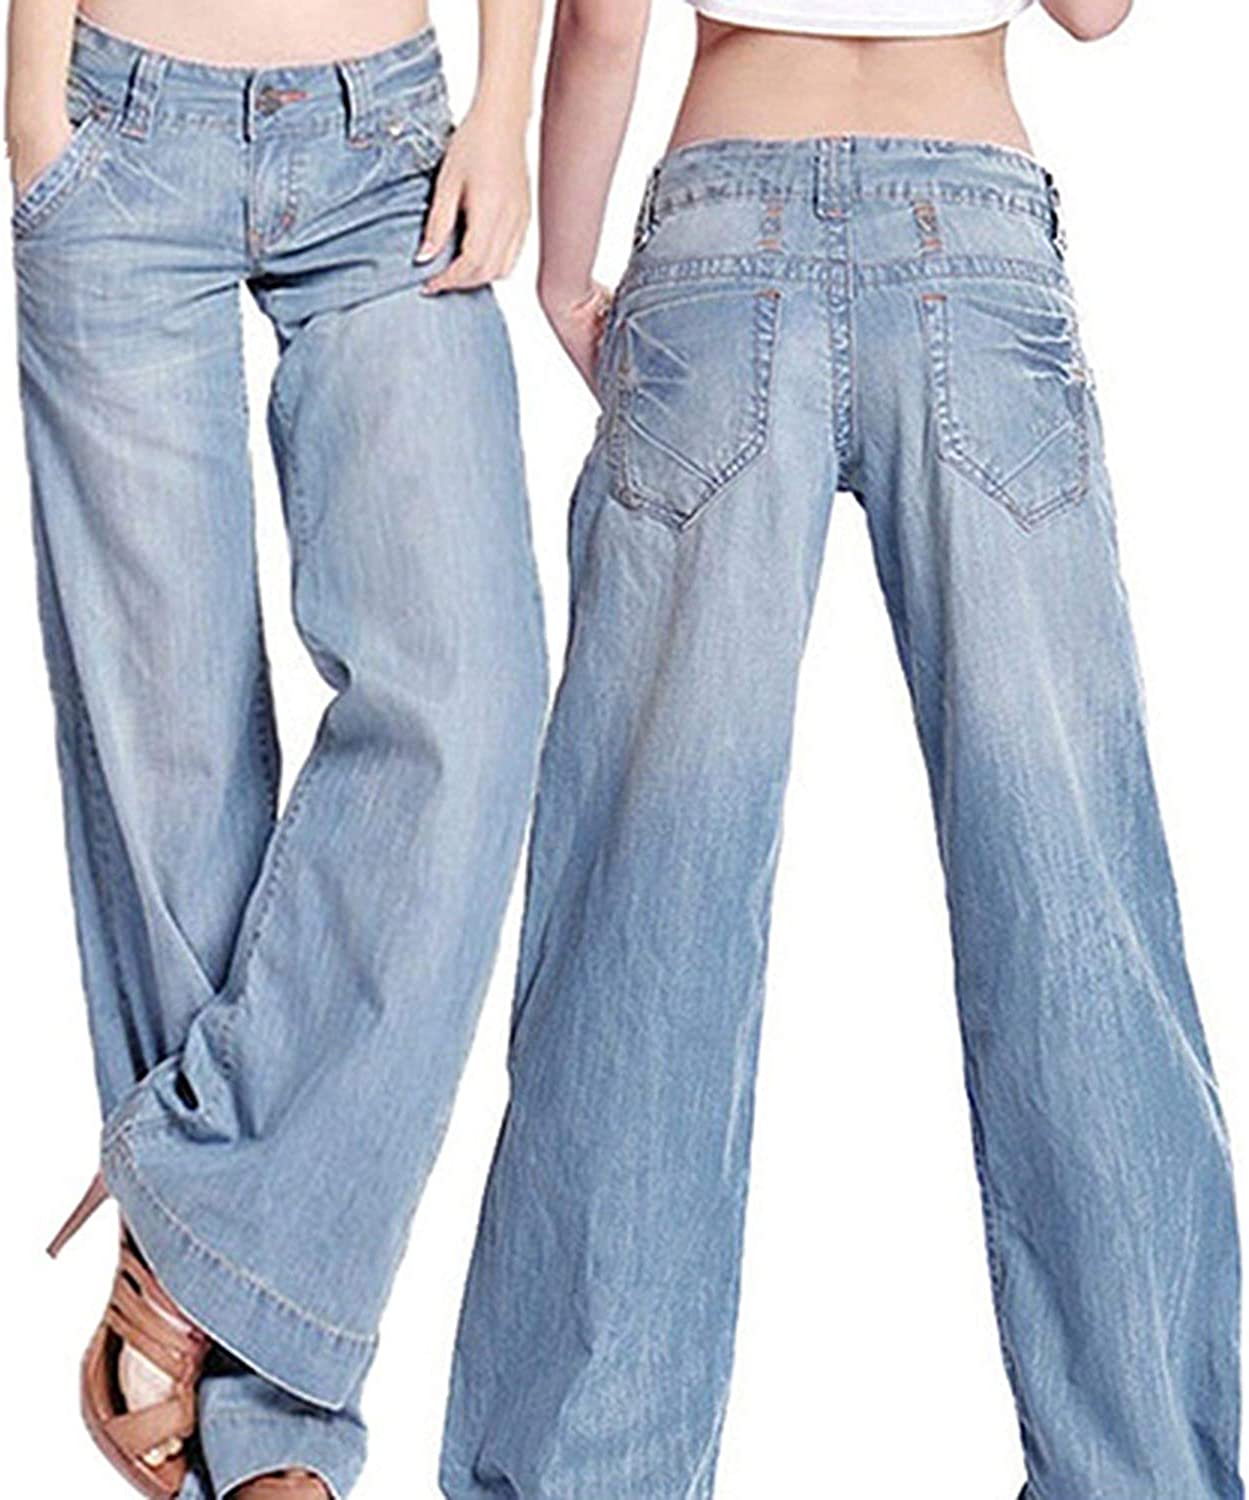 Womens Vintage Wide Legged Jeans Flared Trousers